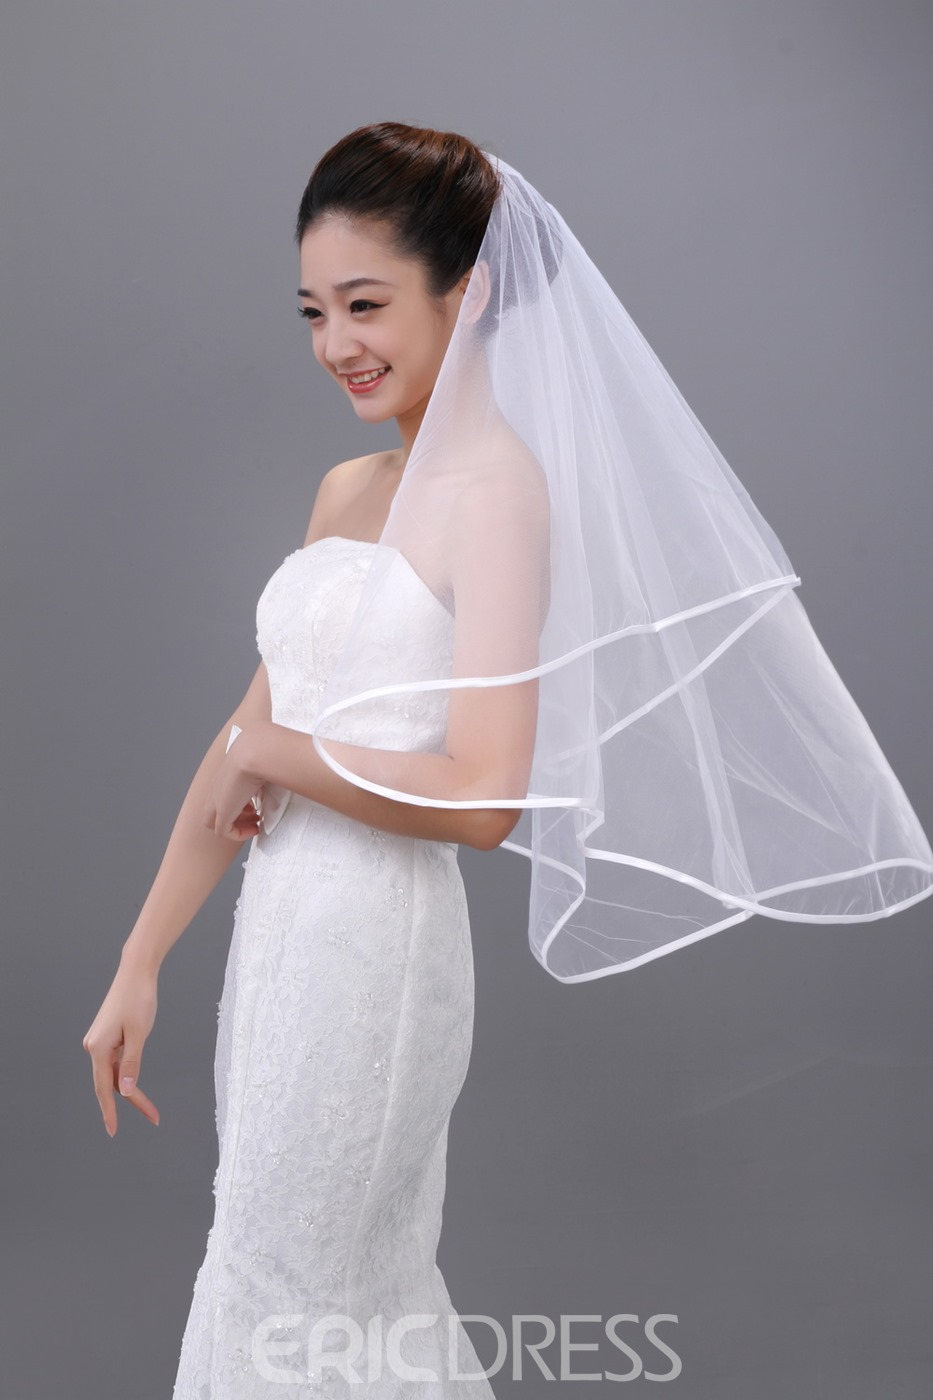 Elegant Elbow Bridal Veil with Satin Edge